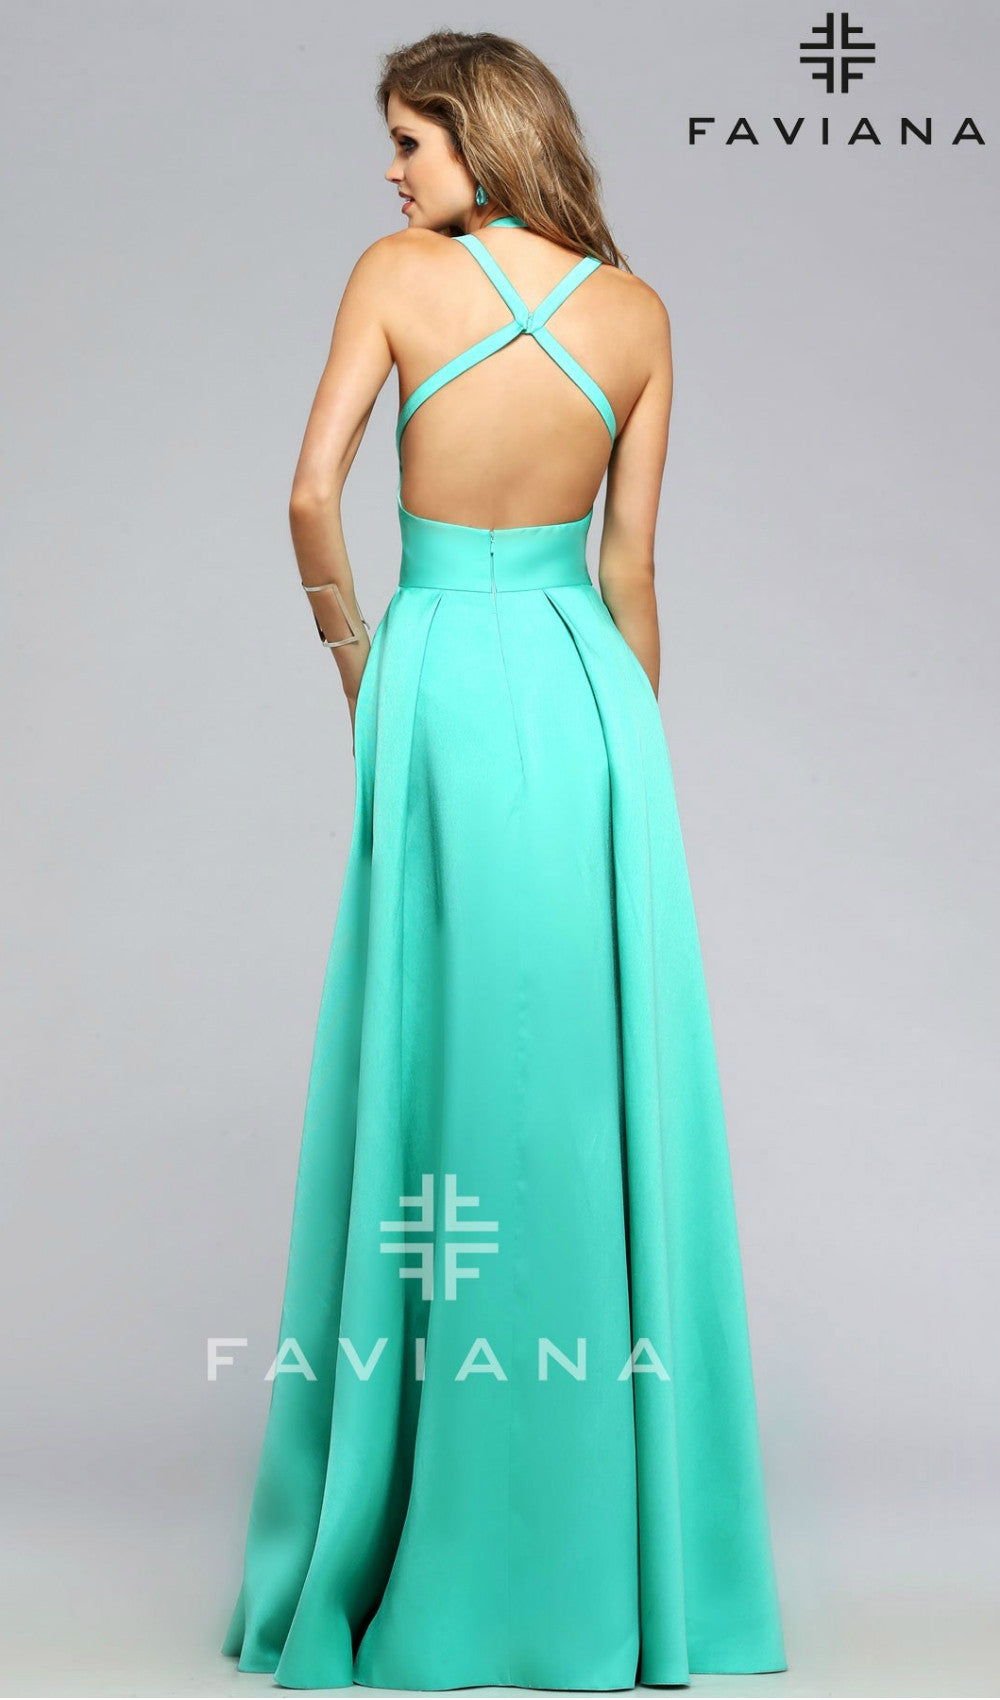 Taylor Swift Inspired Prom Dress in Des Moines | Schaffer\'s